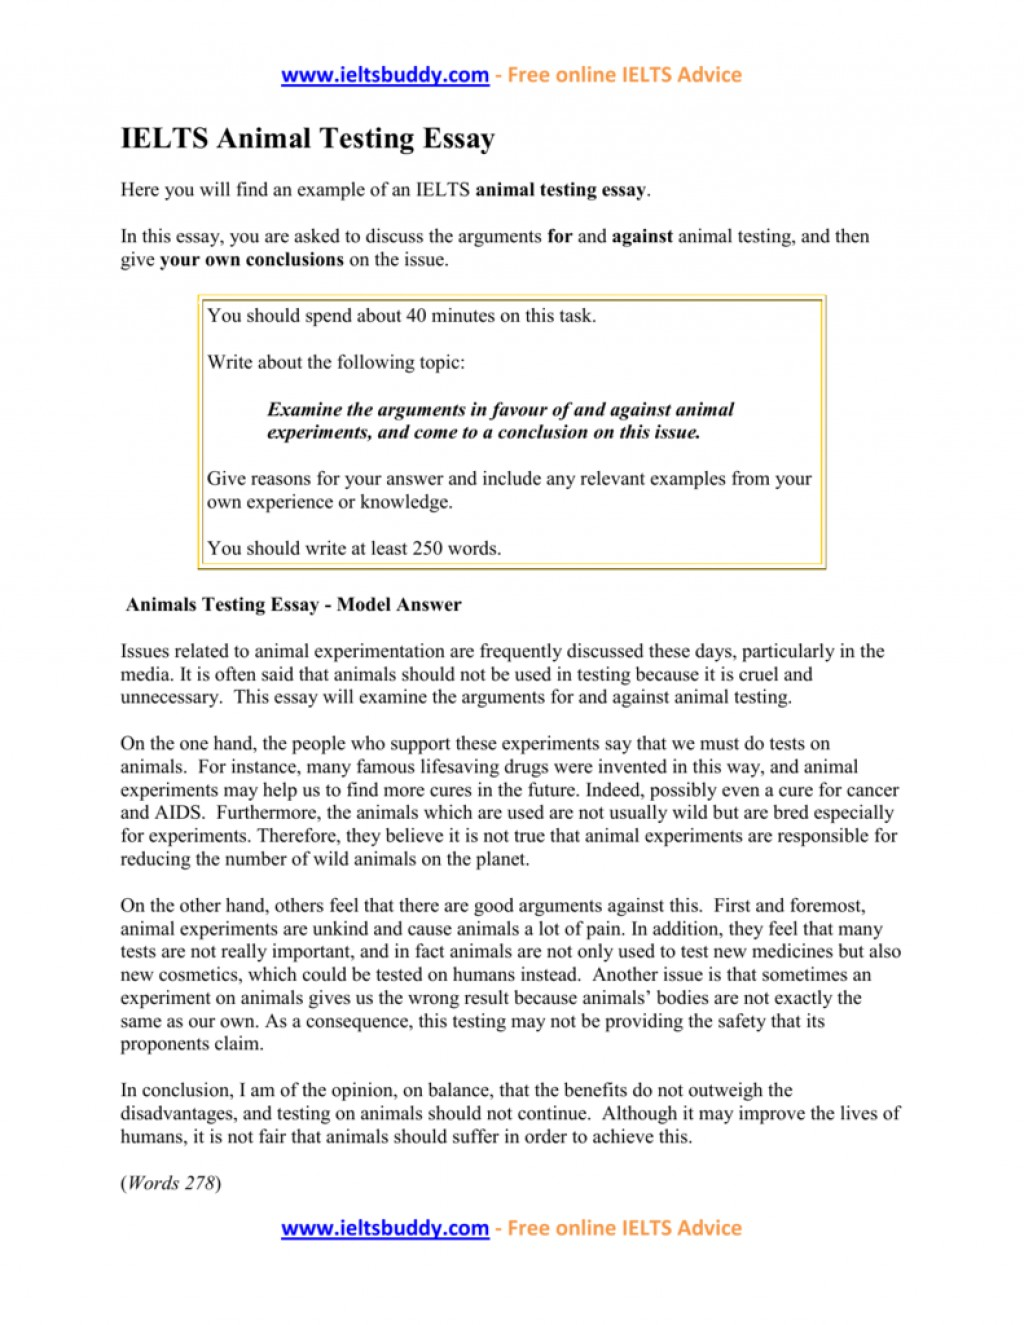 003 Against Animal Testing Essay Example 008917896 1 Imposing Titles Persuasive Conclusion Large